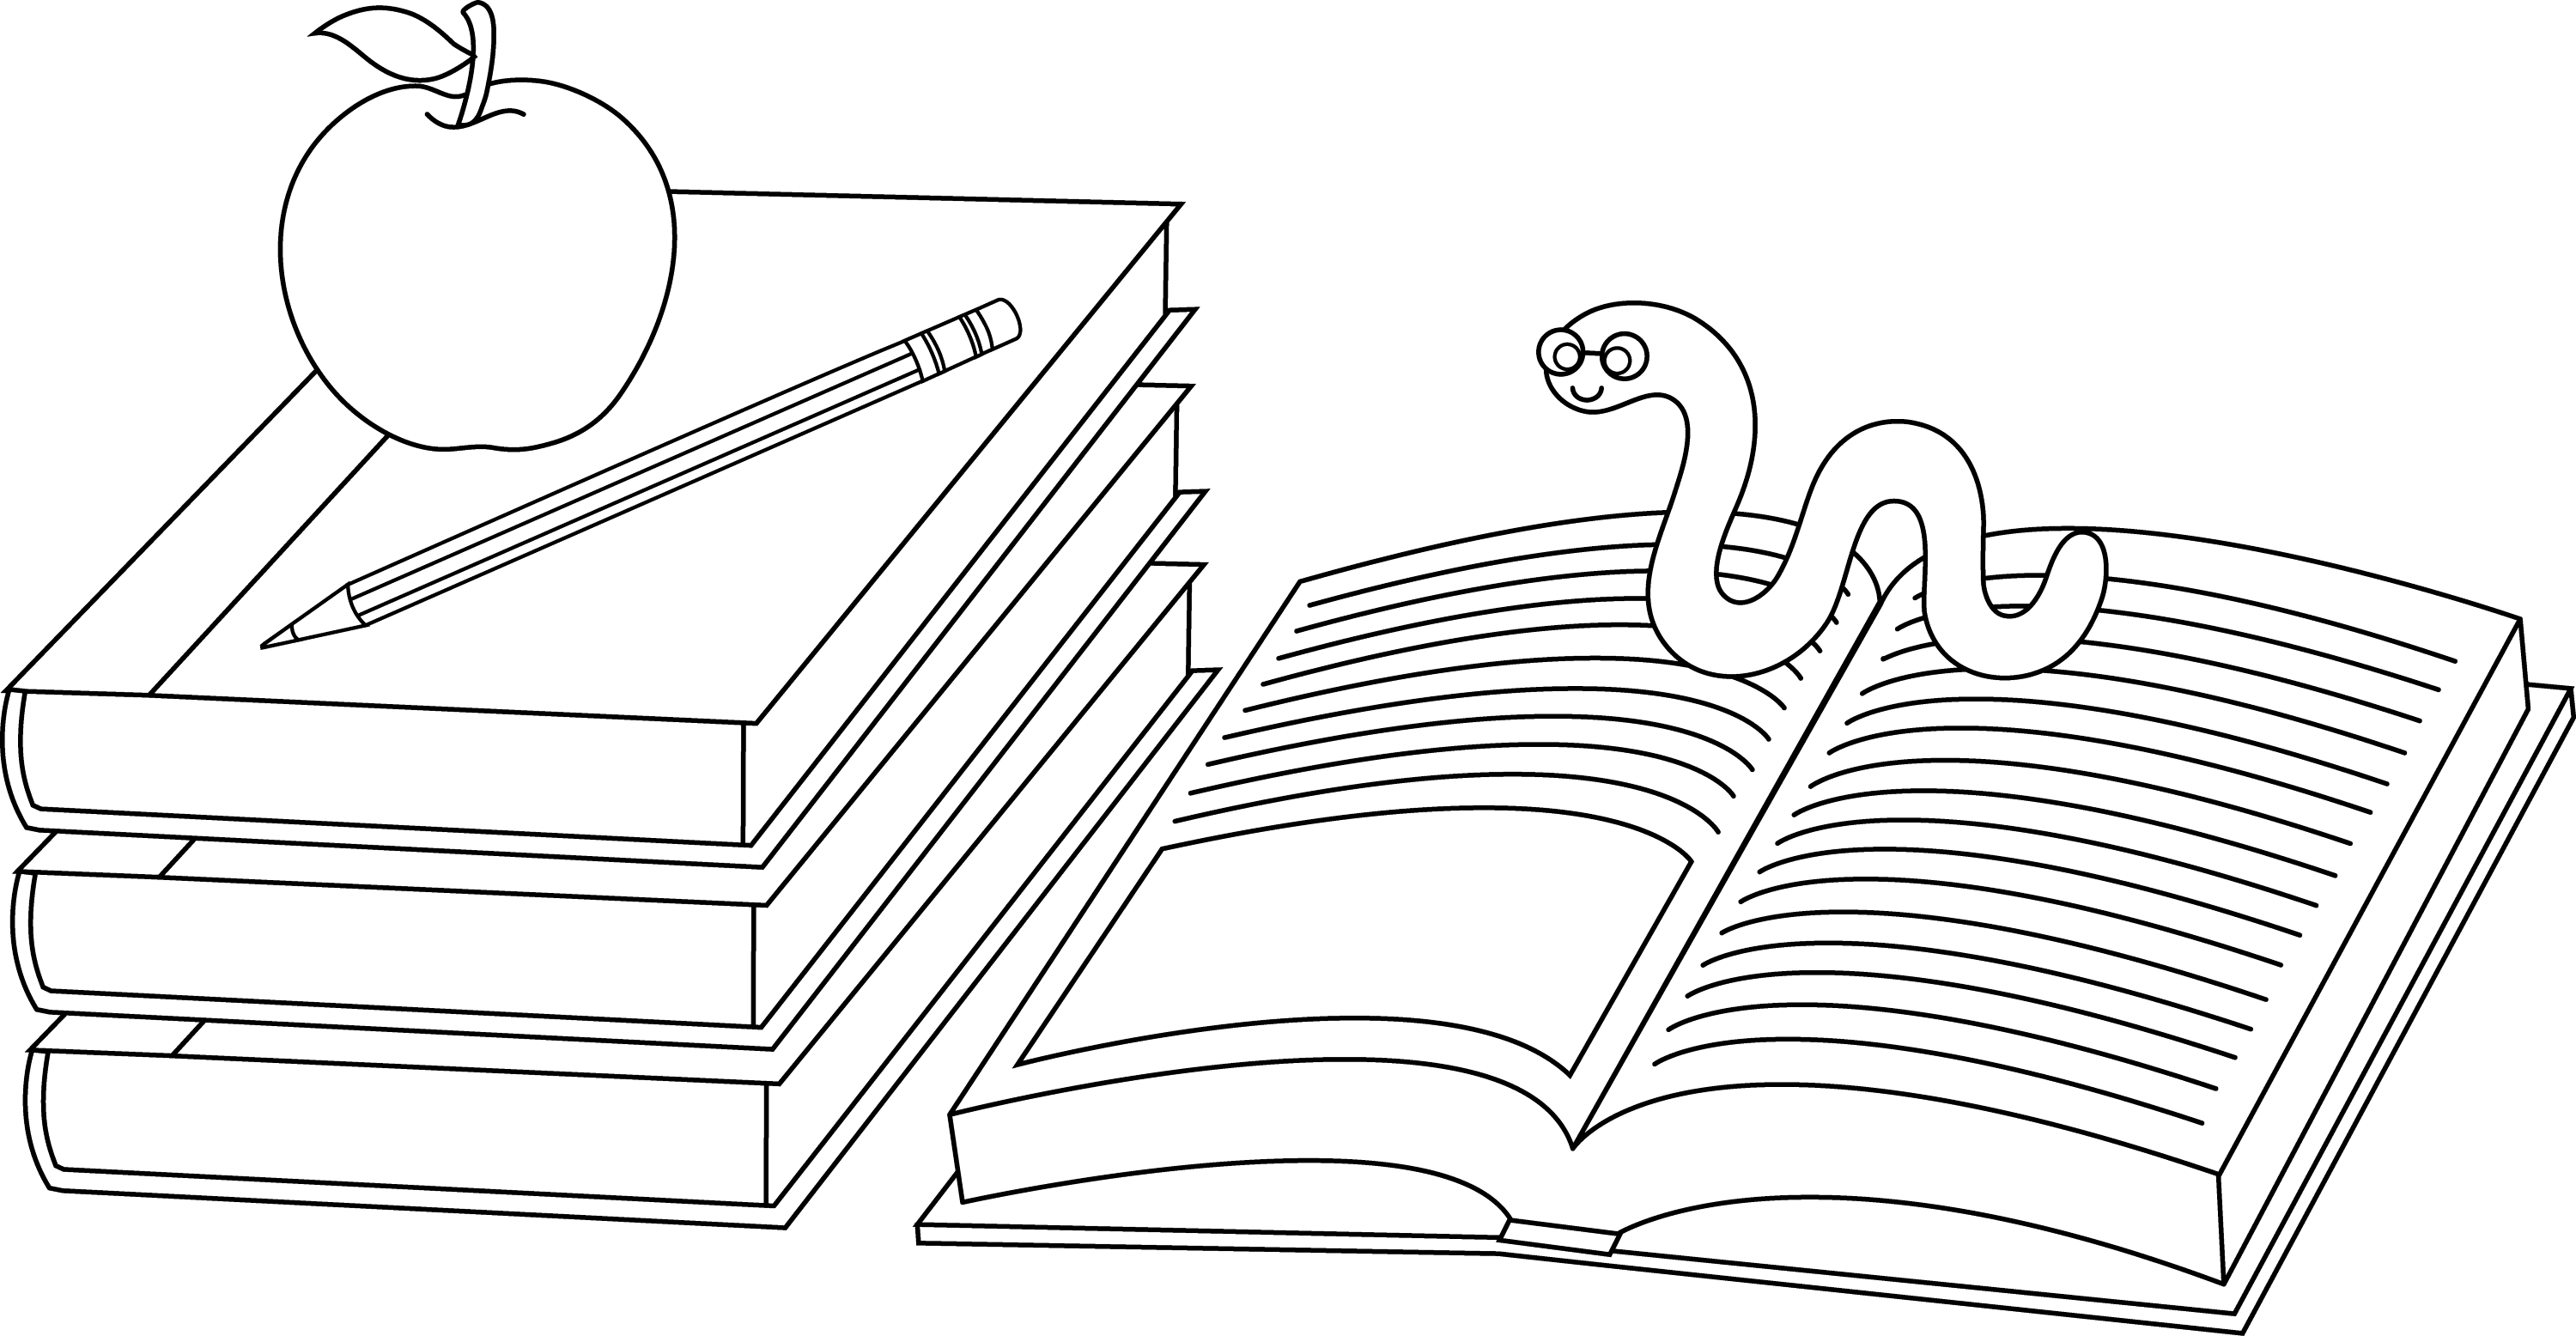 coloring pictures school colorable school books and bookworm free clip art school coloring pictures